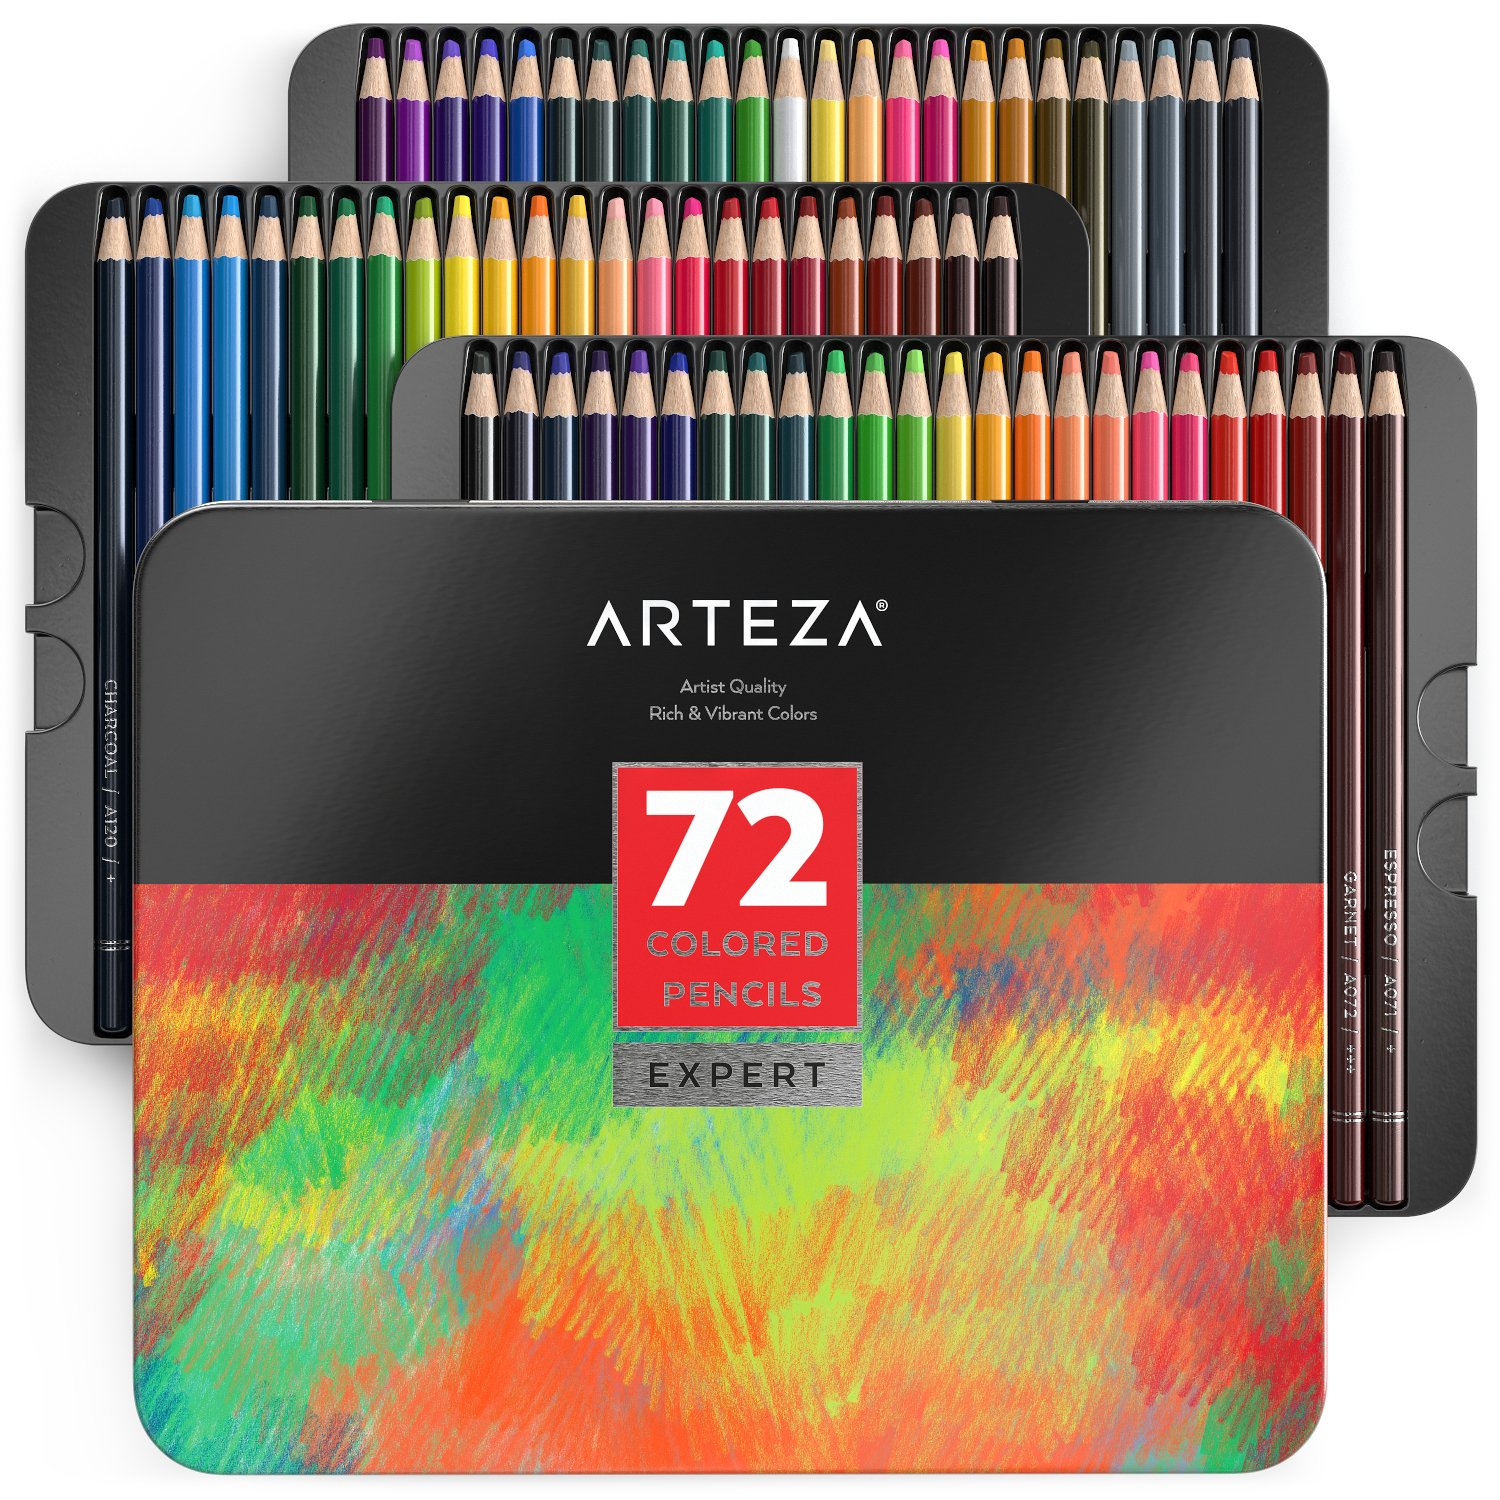 Arteza Professional Colored Pencils (Set of 72)